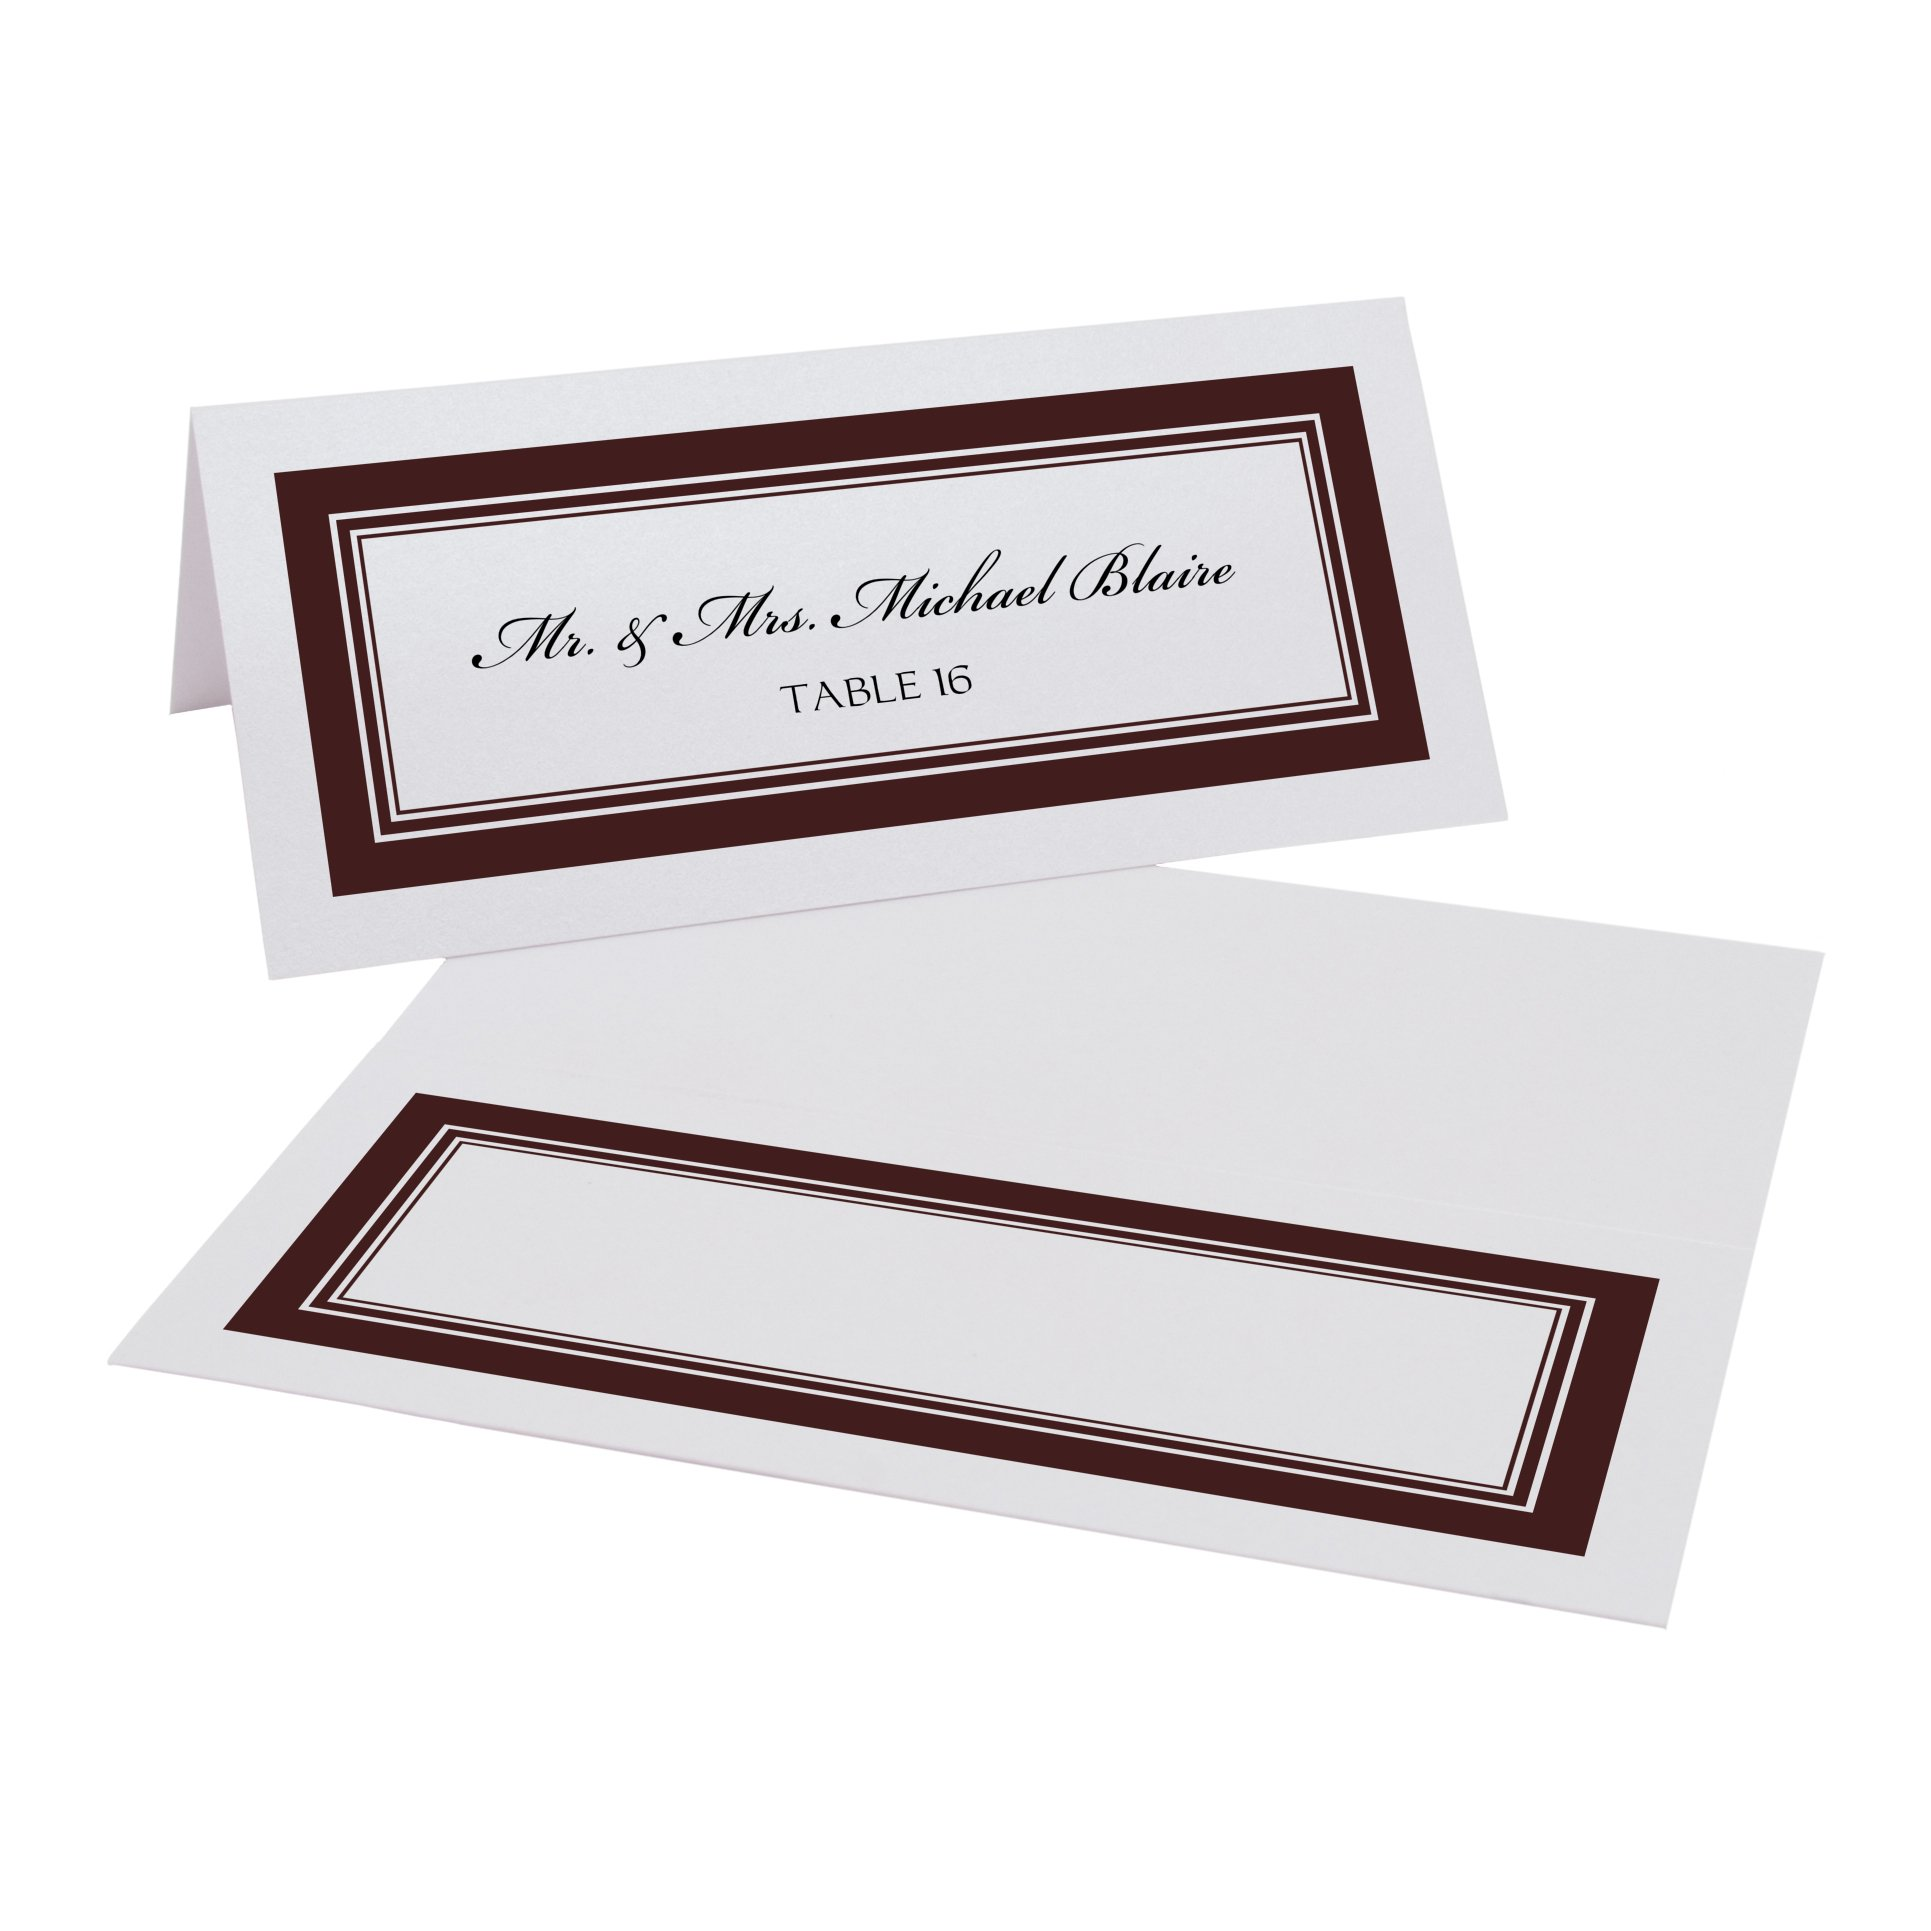 Triple Line Border Place Cards, White, Chocolate, Set of 375 by Documents and Designs